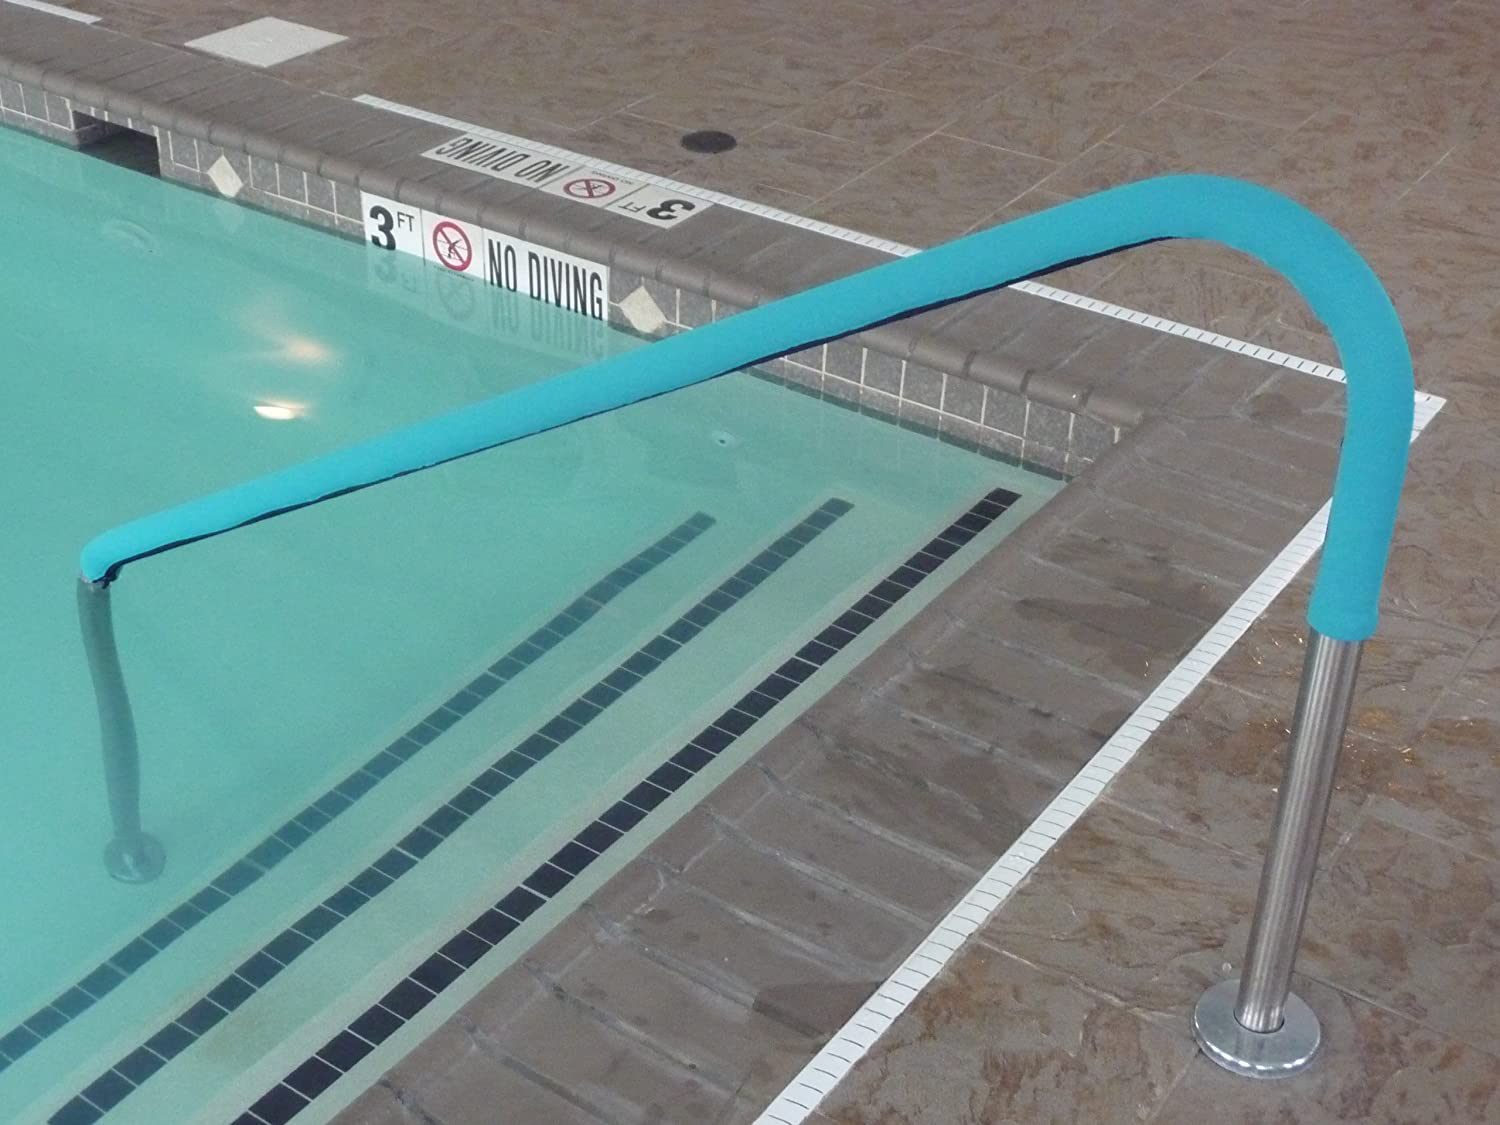 Rail Grips Osrg 6tl Swimming Pool Hand Rail Cover 6 Feet Teal New Free Ship Ebay